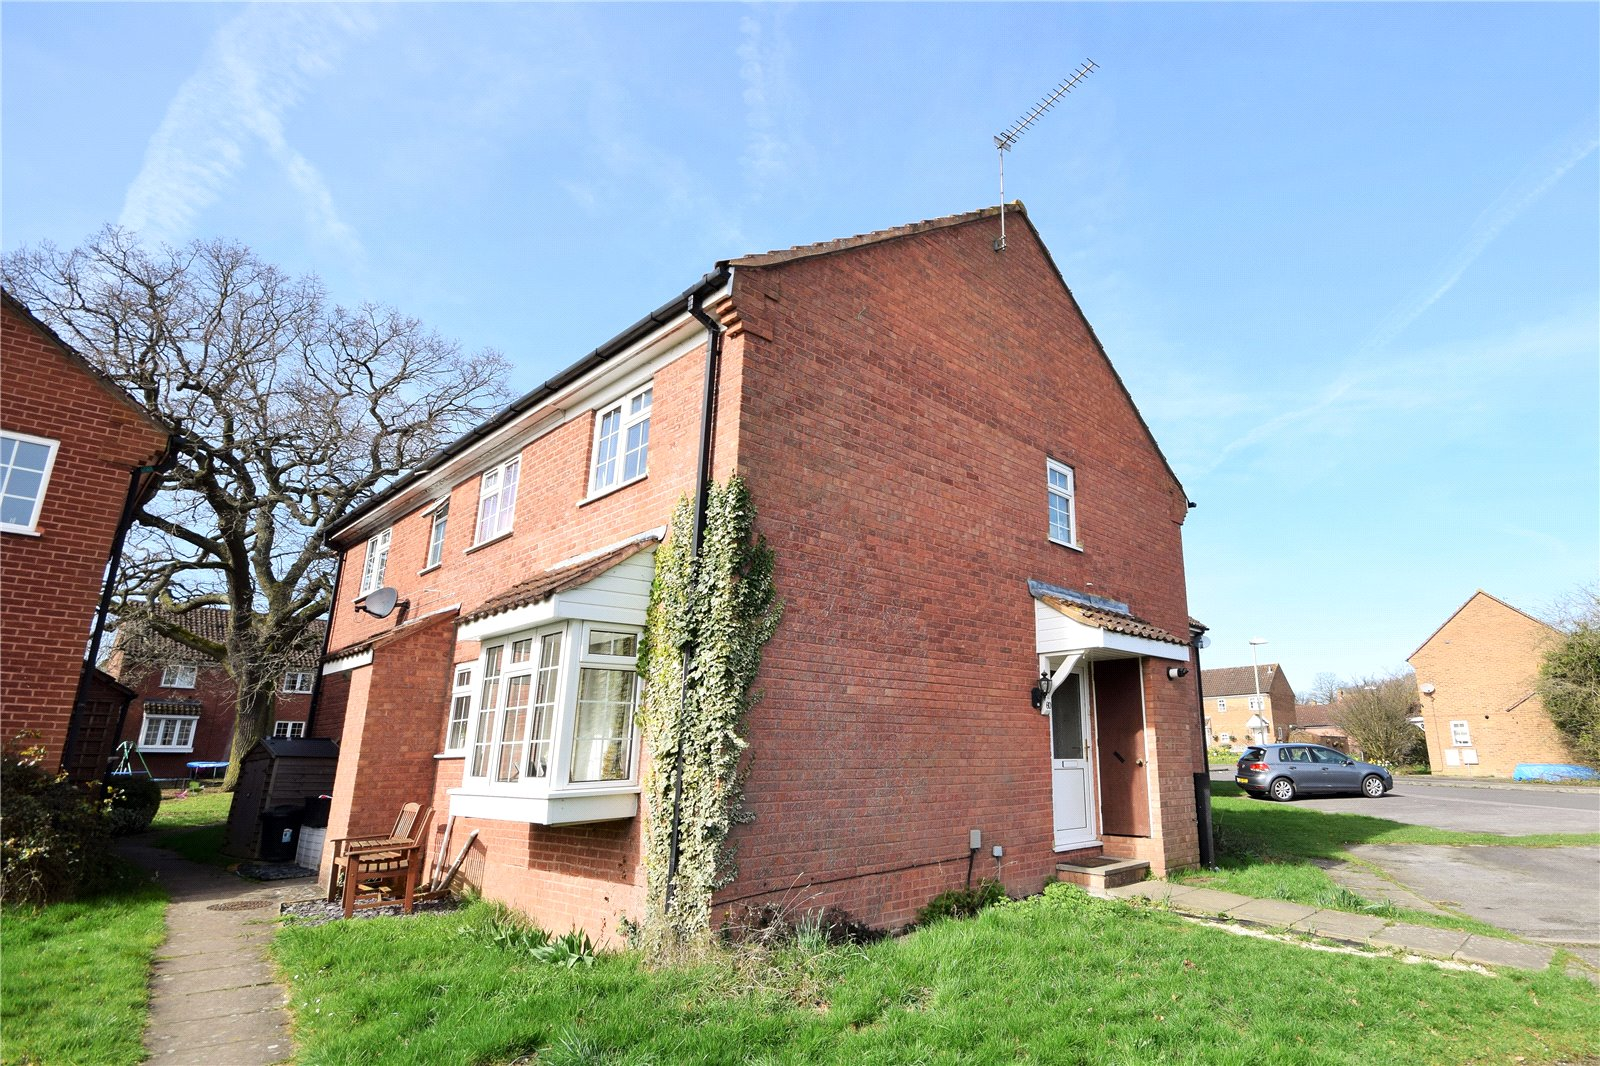 2 Bedrooms Terraced House for sale in Bedfordshire Way, Wokingham, Berkshire, RG41